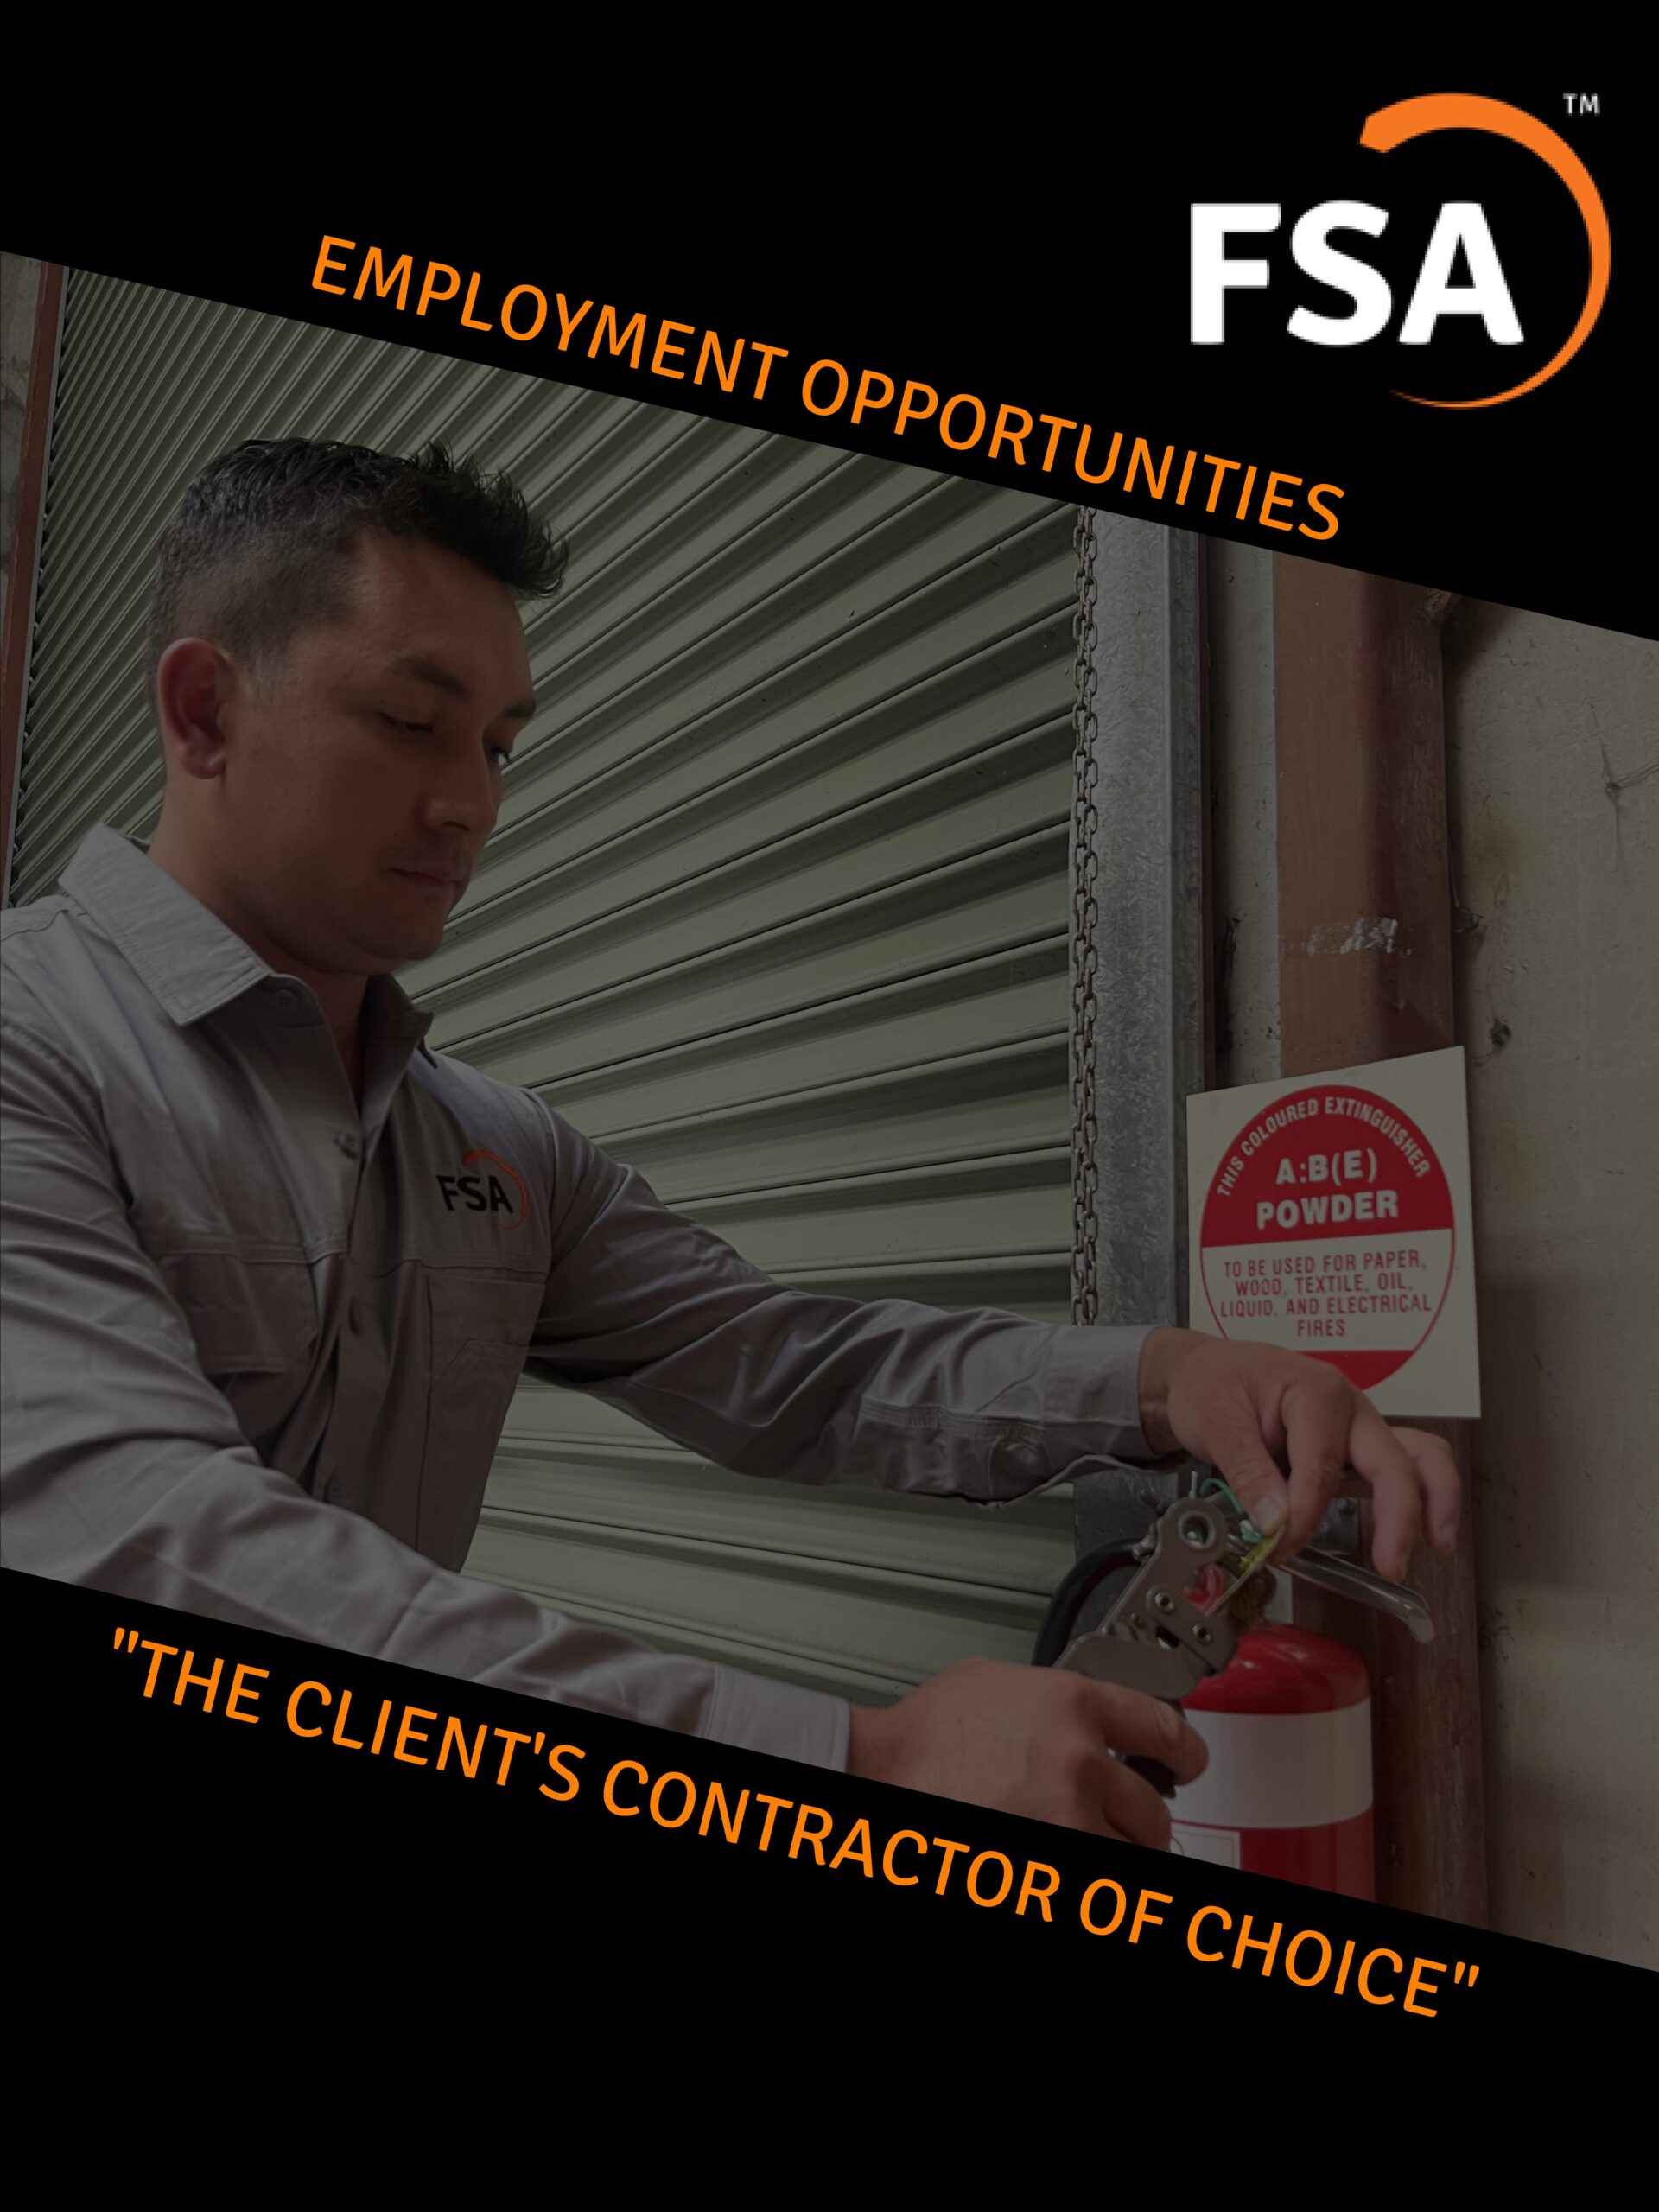 FSA SERVICES GROUP ARE NOW OFFERING EMPLOYMENT OPPORTUNITES